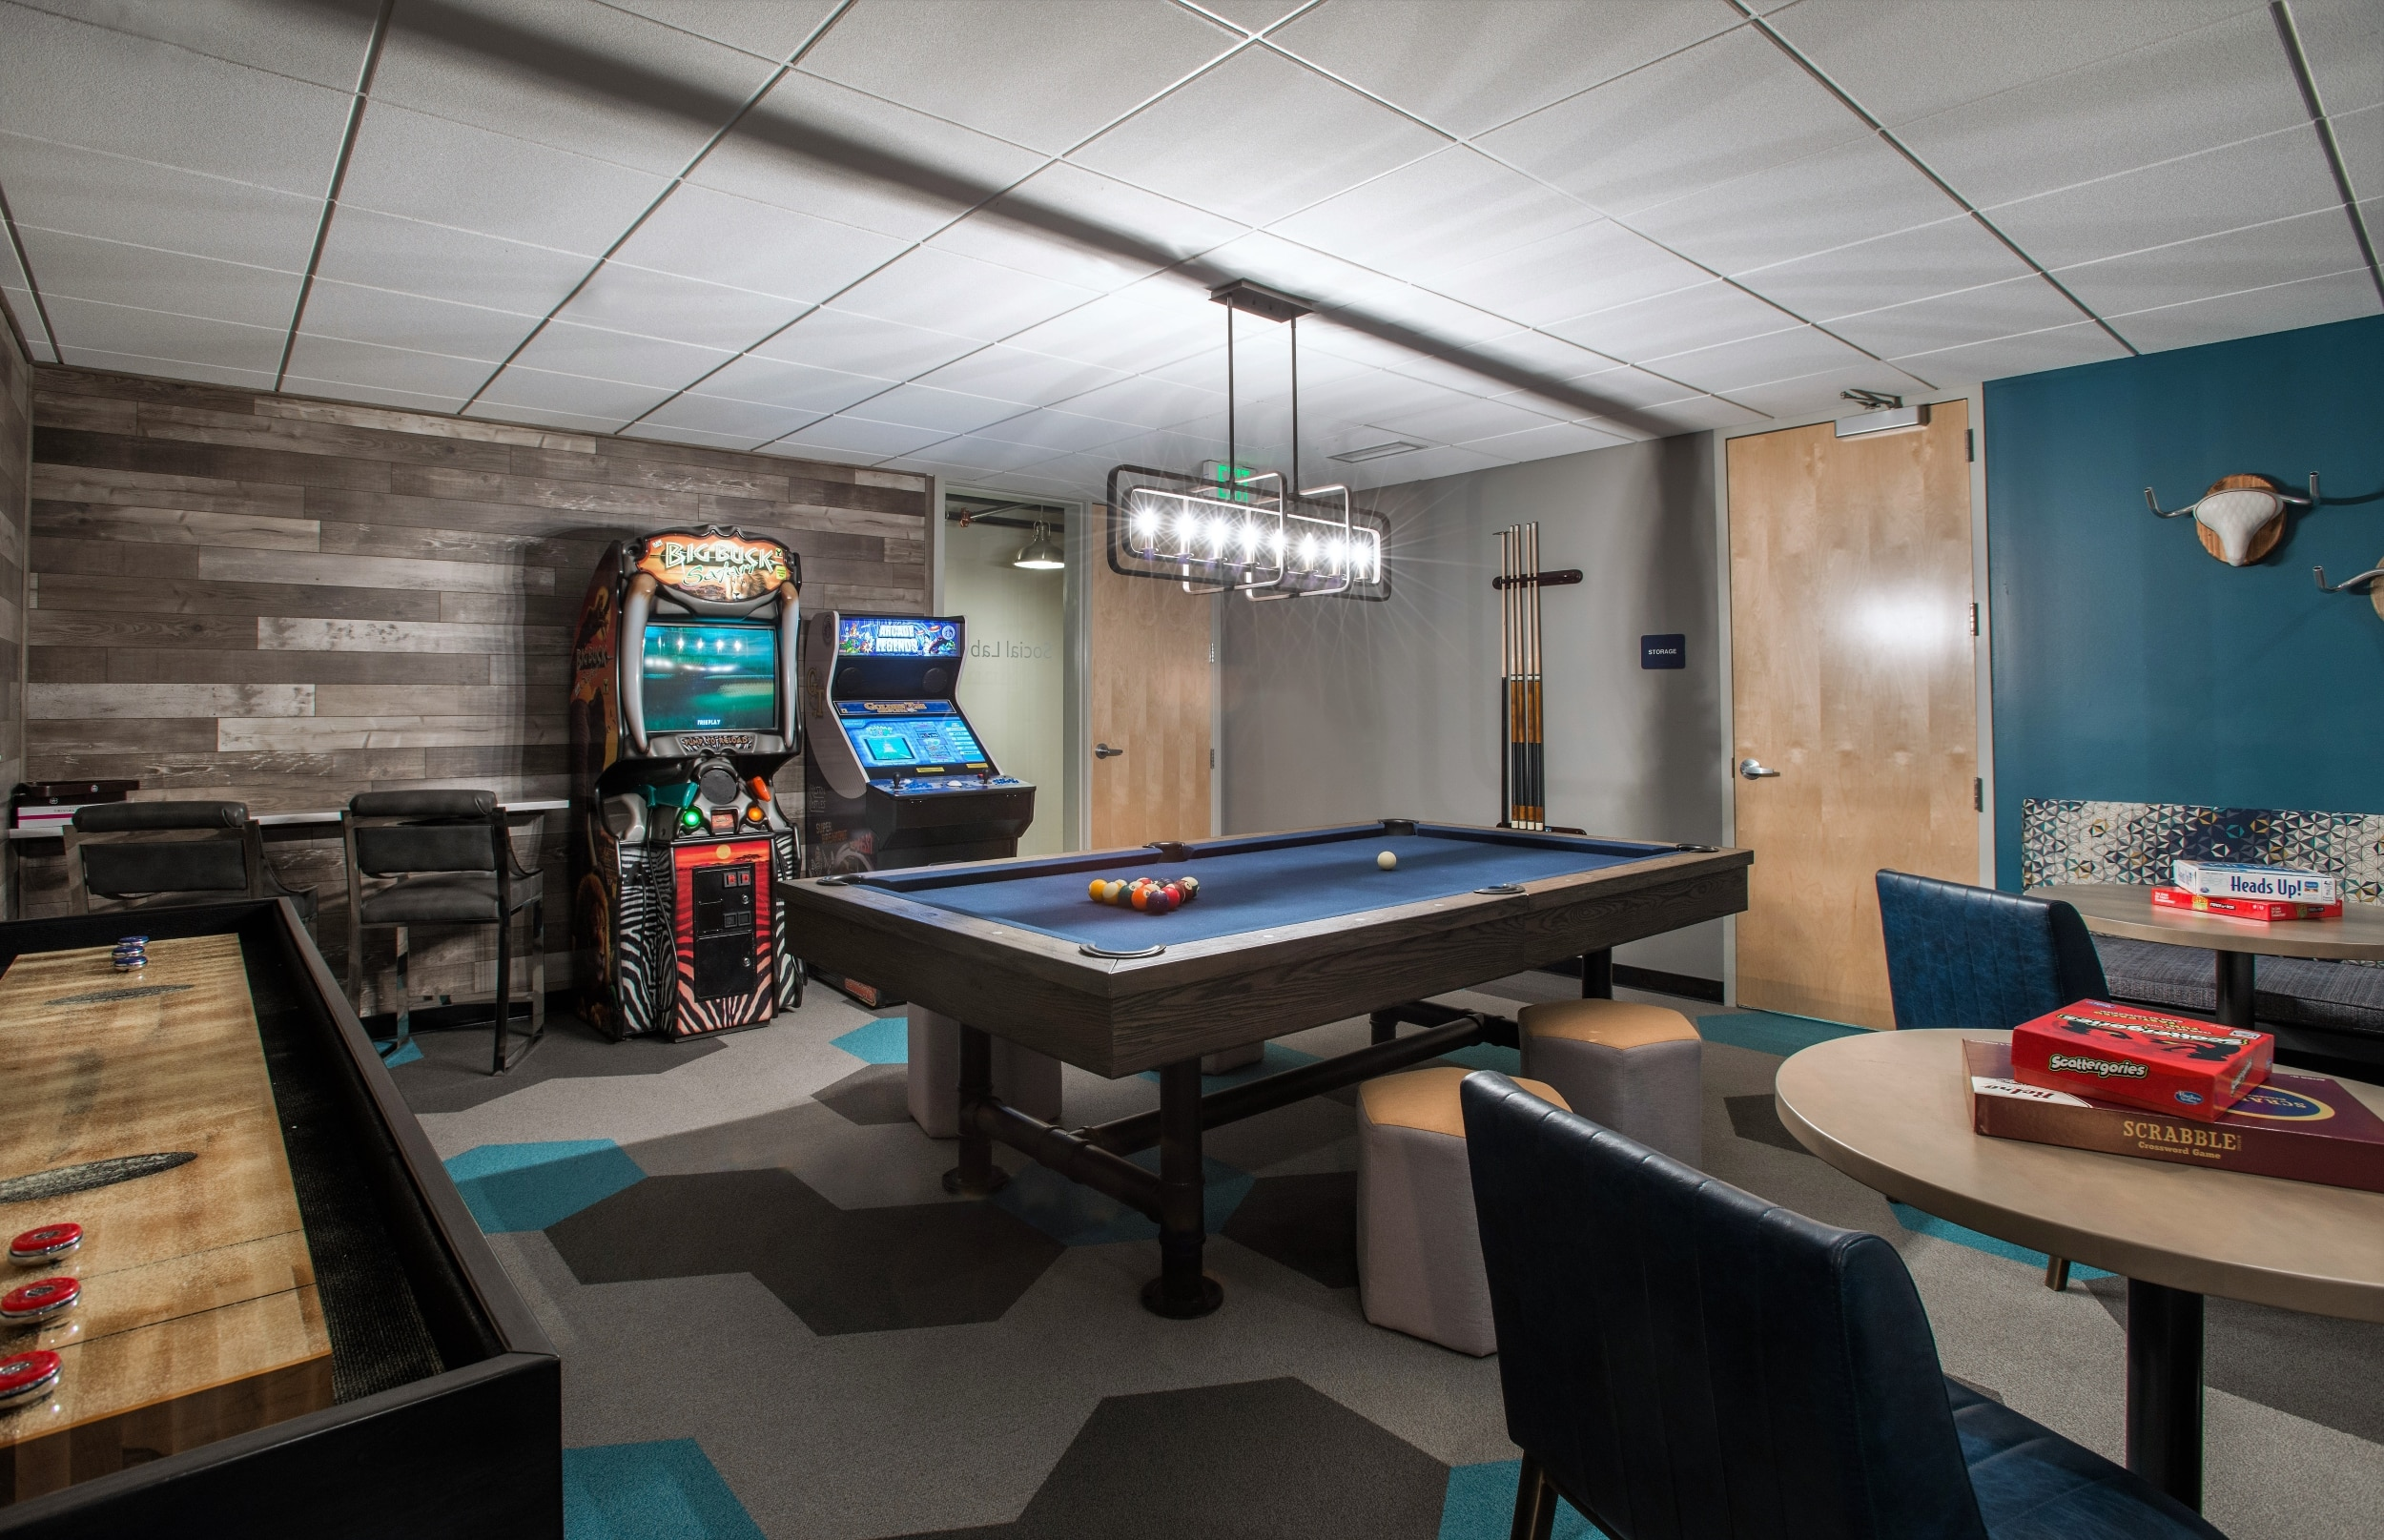 Game Room with Billiards, Shuffleboard, Arcades & More!